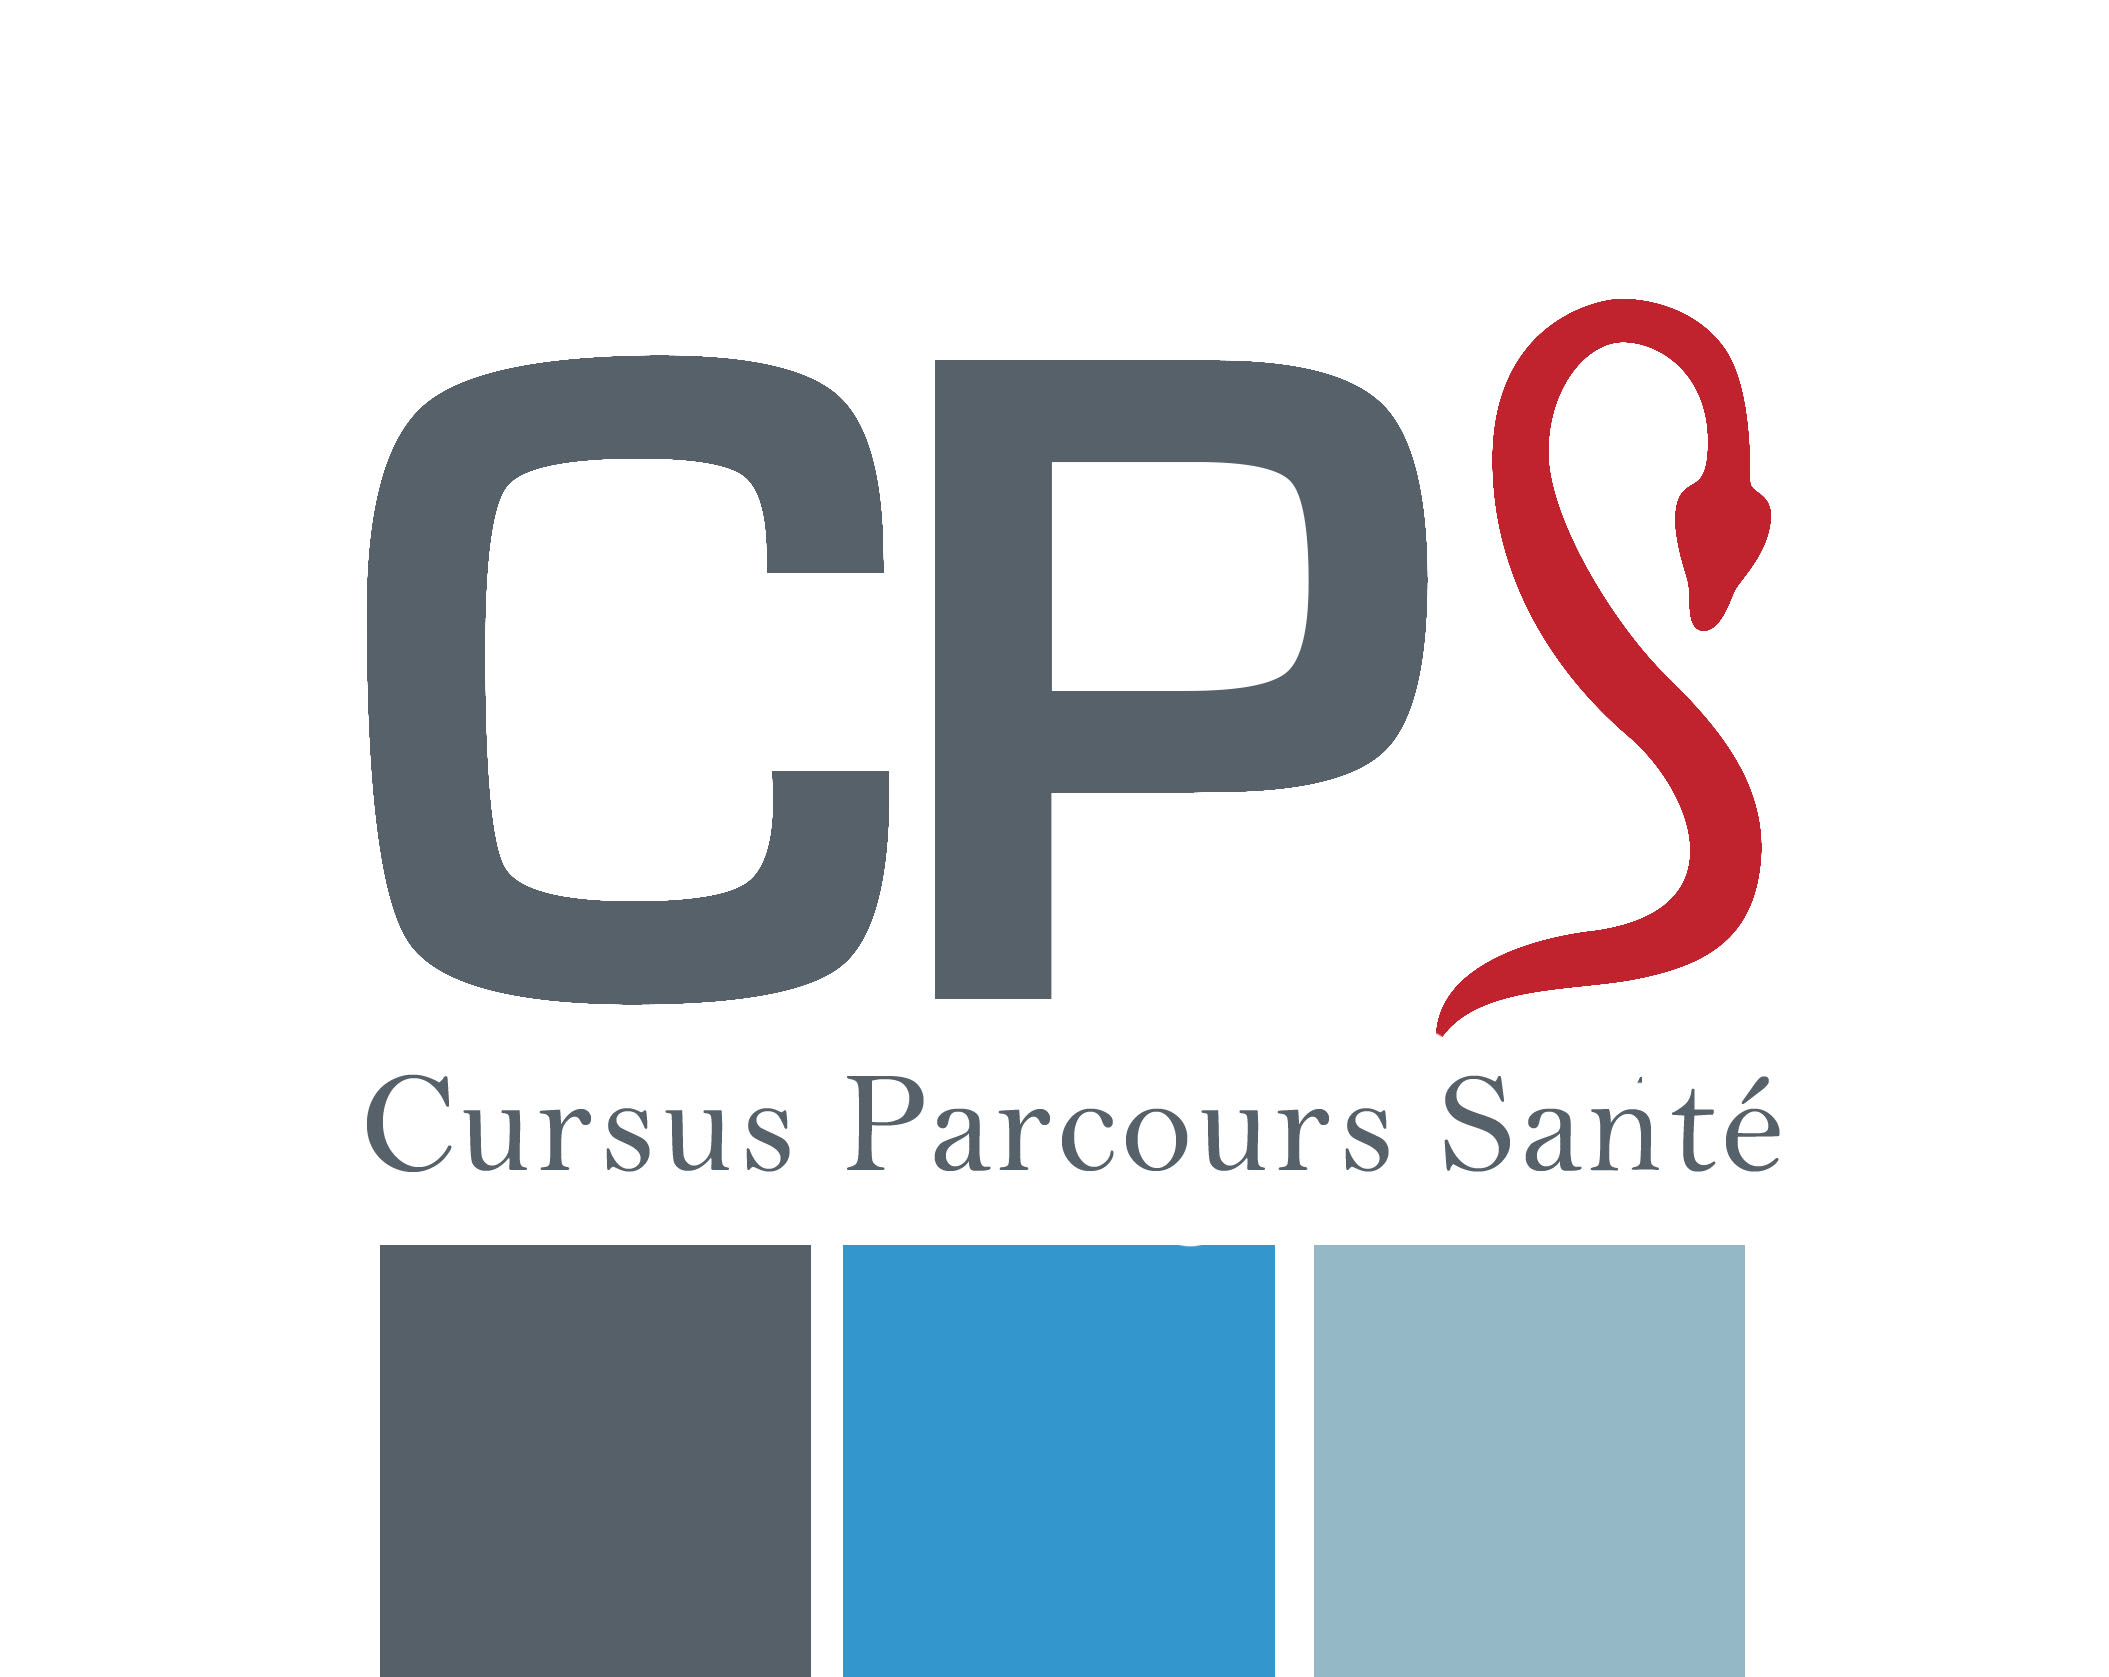 logo cps angers